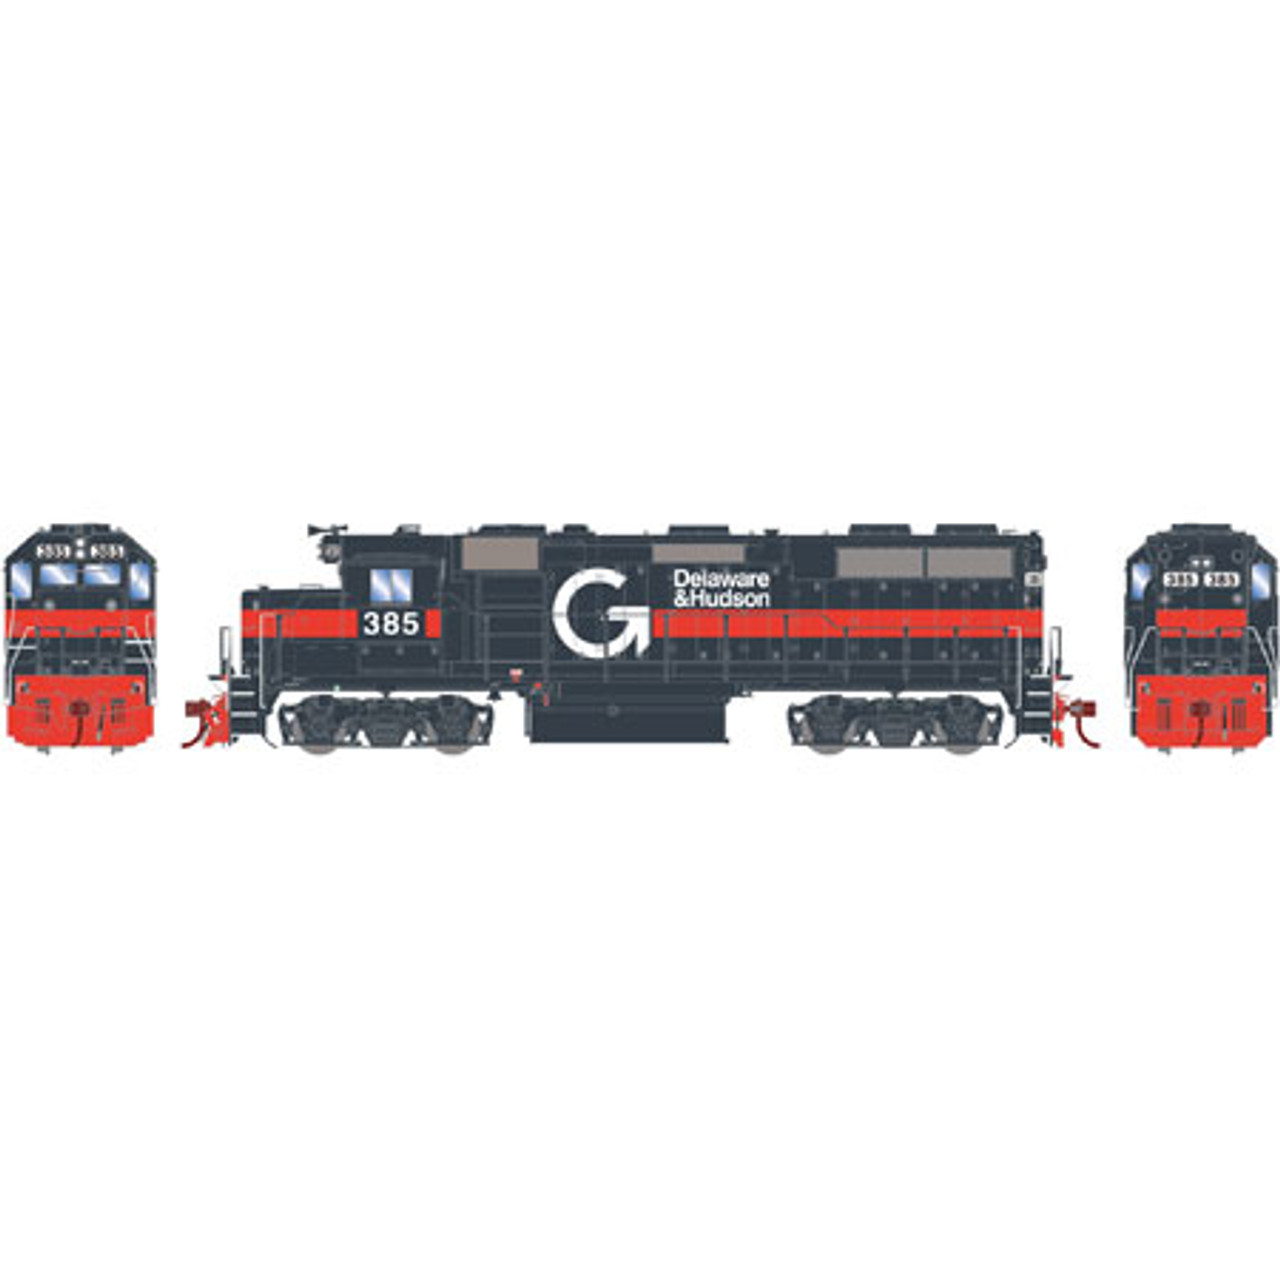 Athearn ATHG65607 GP39-2 Phase I D&H - Guilford #385 with DCC & Sound Tsunami2  (SCALE=HO)  Part #ATHG65607